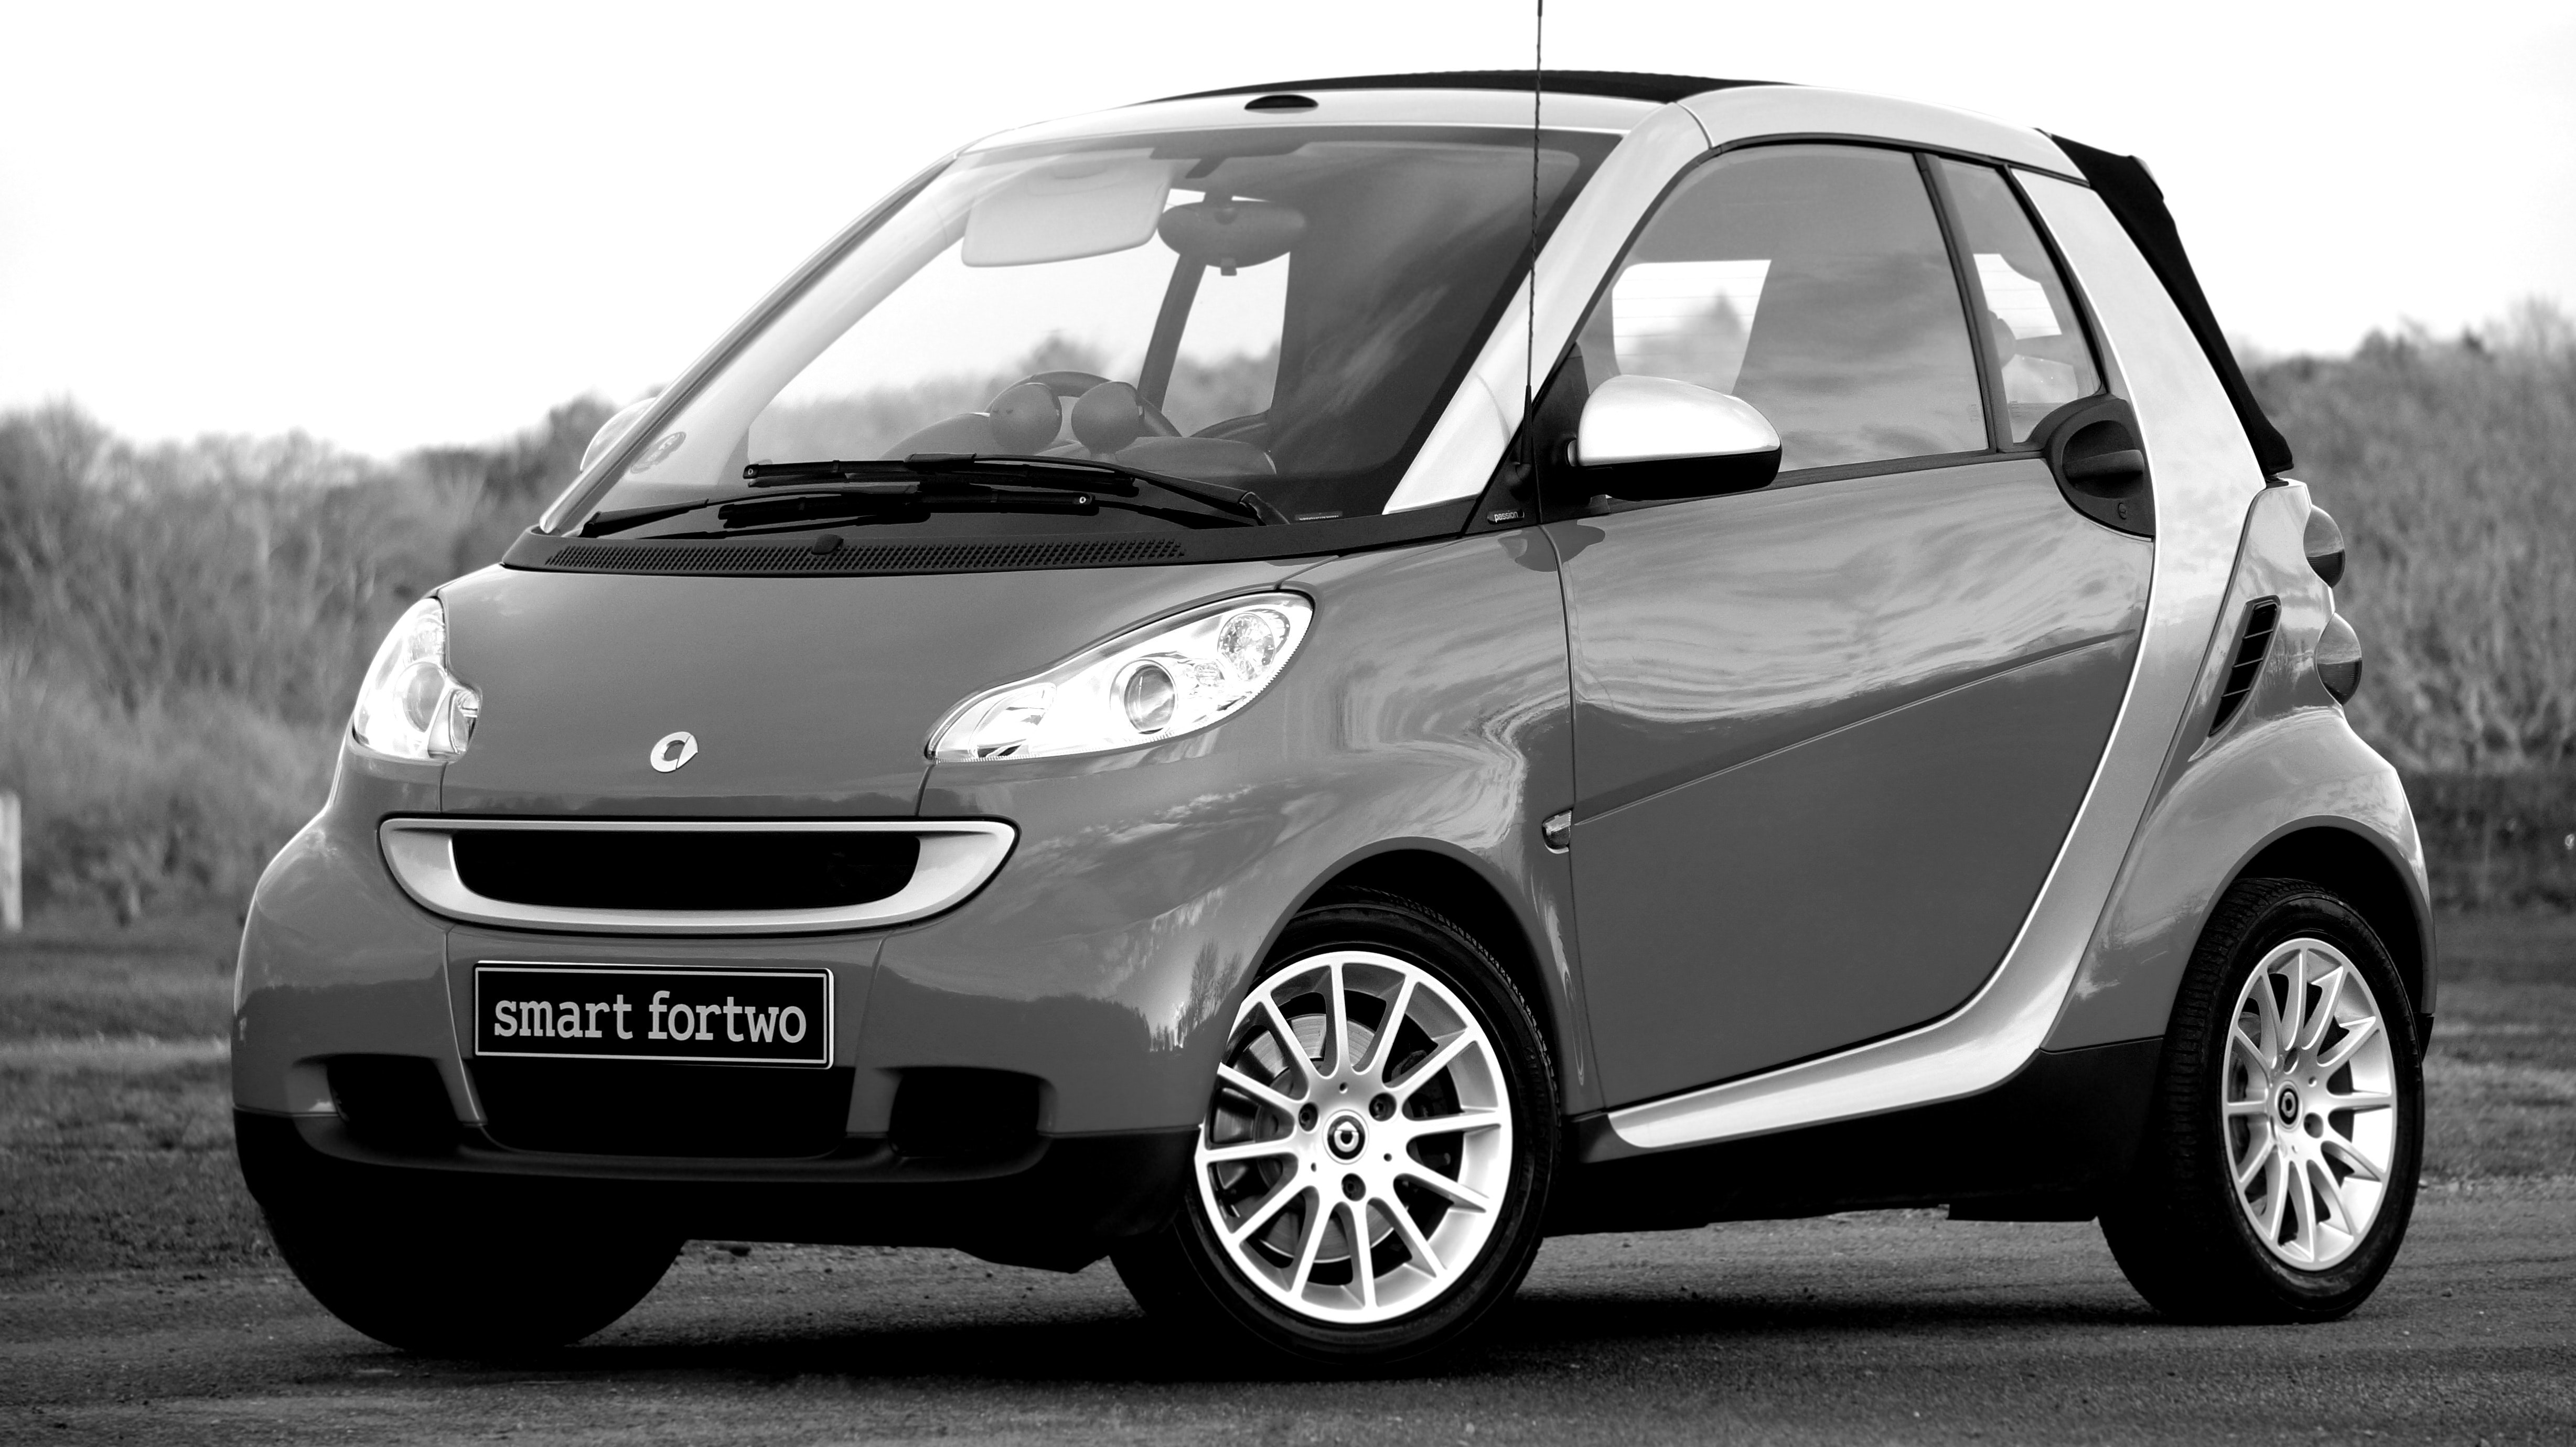 Grayscale Photo of Smart Fortwo, Asphalt, Modern, Vehicle, Transportation system, HQ Photo